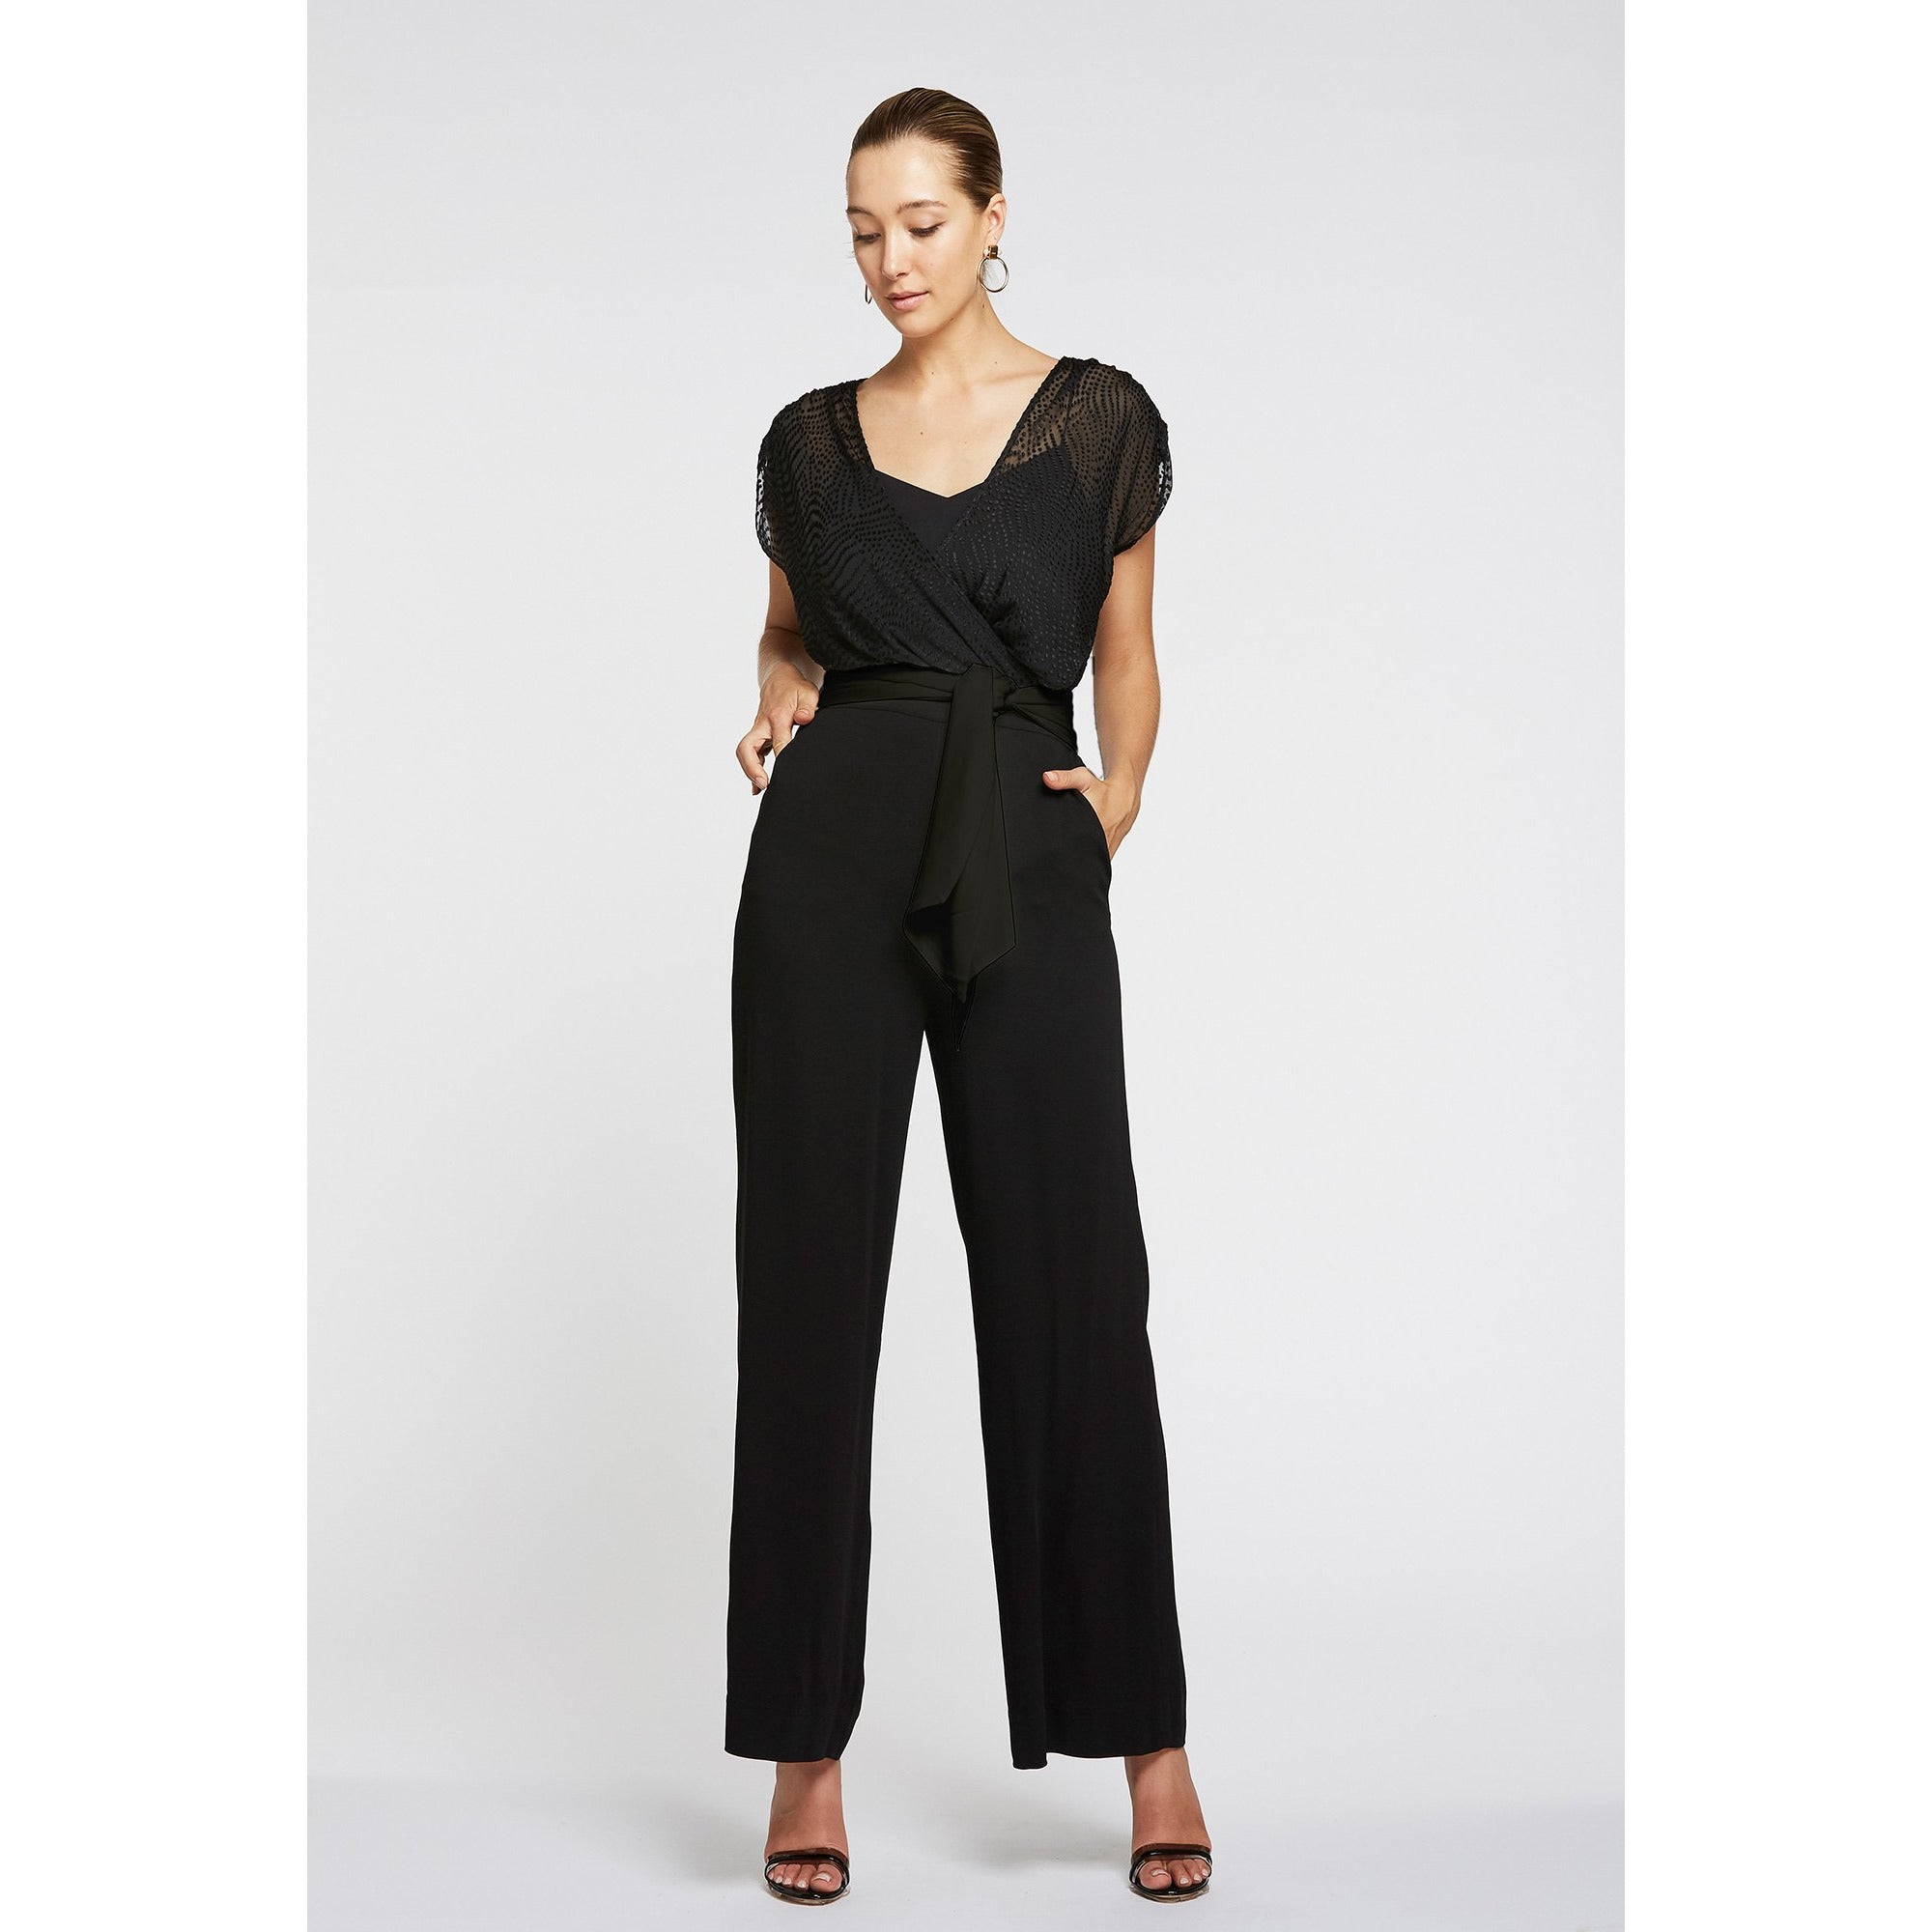 LEGEND CROSS FRONT JUMPSUIT - BLACK